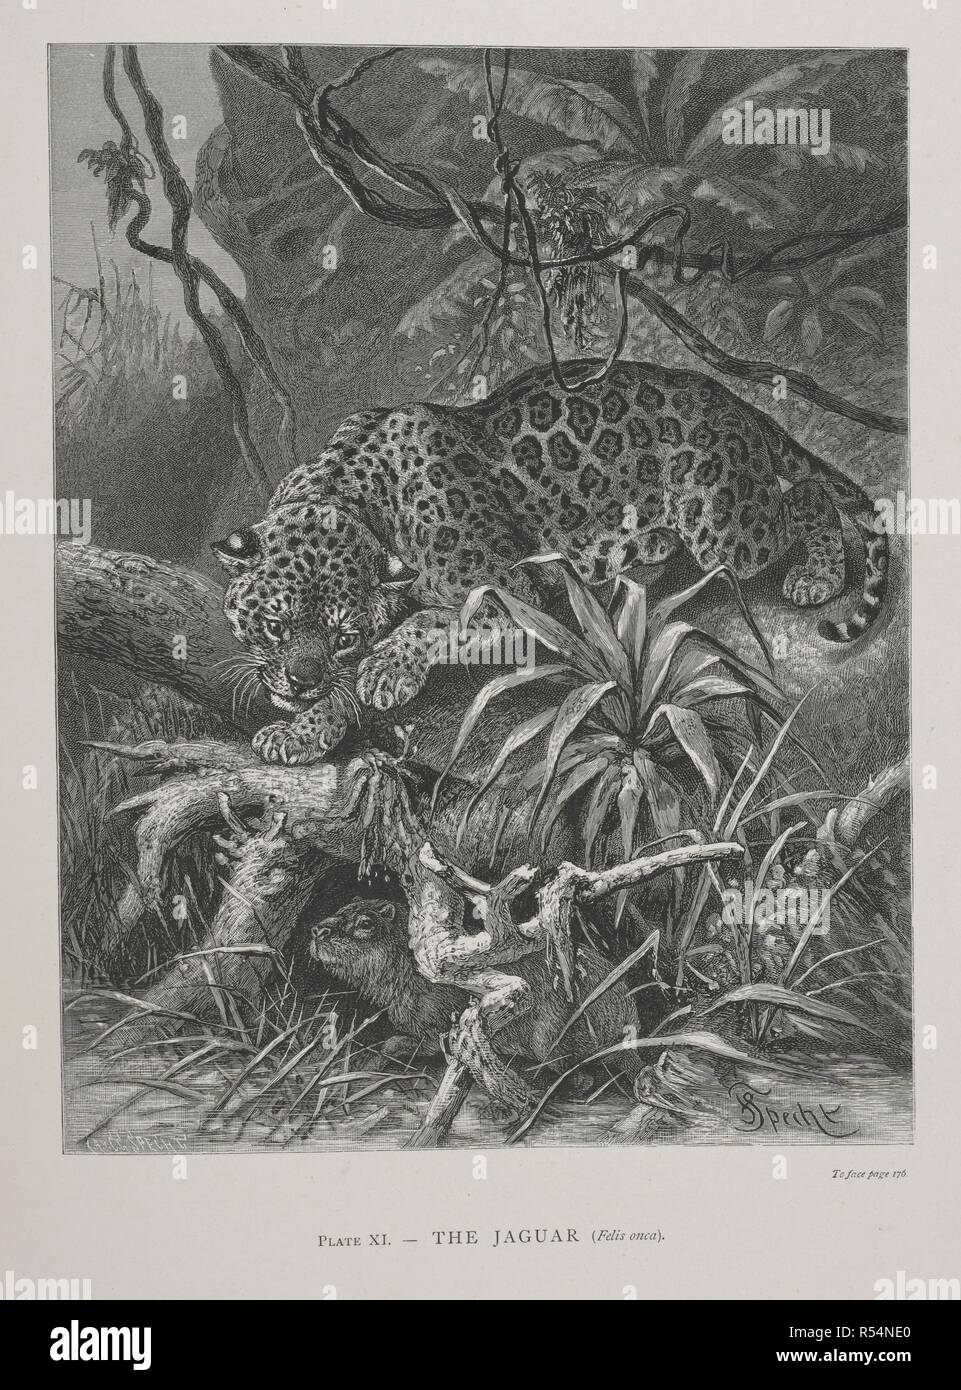 The Jaguar. The Geographical Distribution of Animals, with a study of the relations of living and extinct faunas as elucidating the past changes of the earth's surface. ... . London, 1876. Source: 07209.dd.1 plate XI. Author: WALLACE, ALFRED RUSSEL. - Stock Image